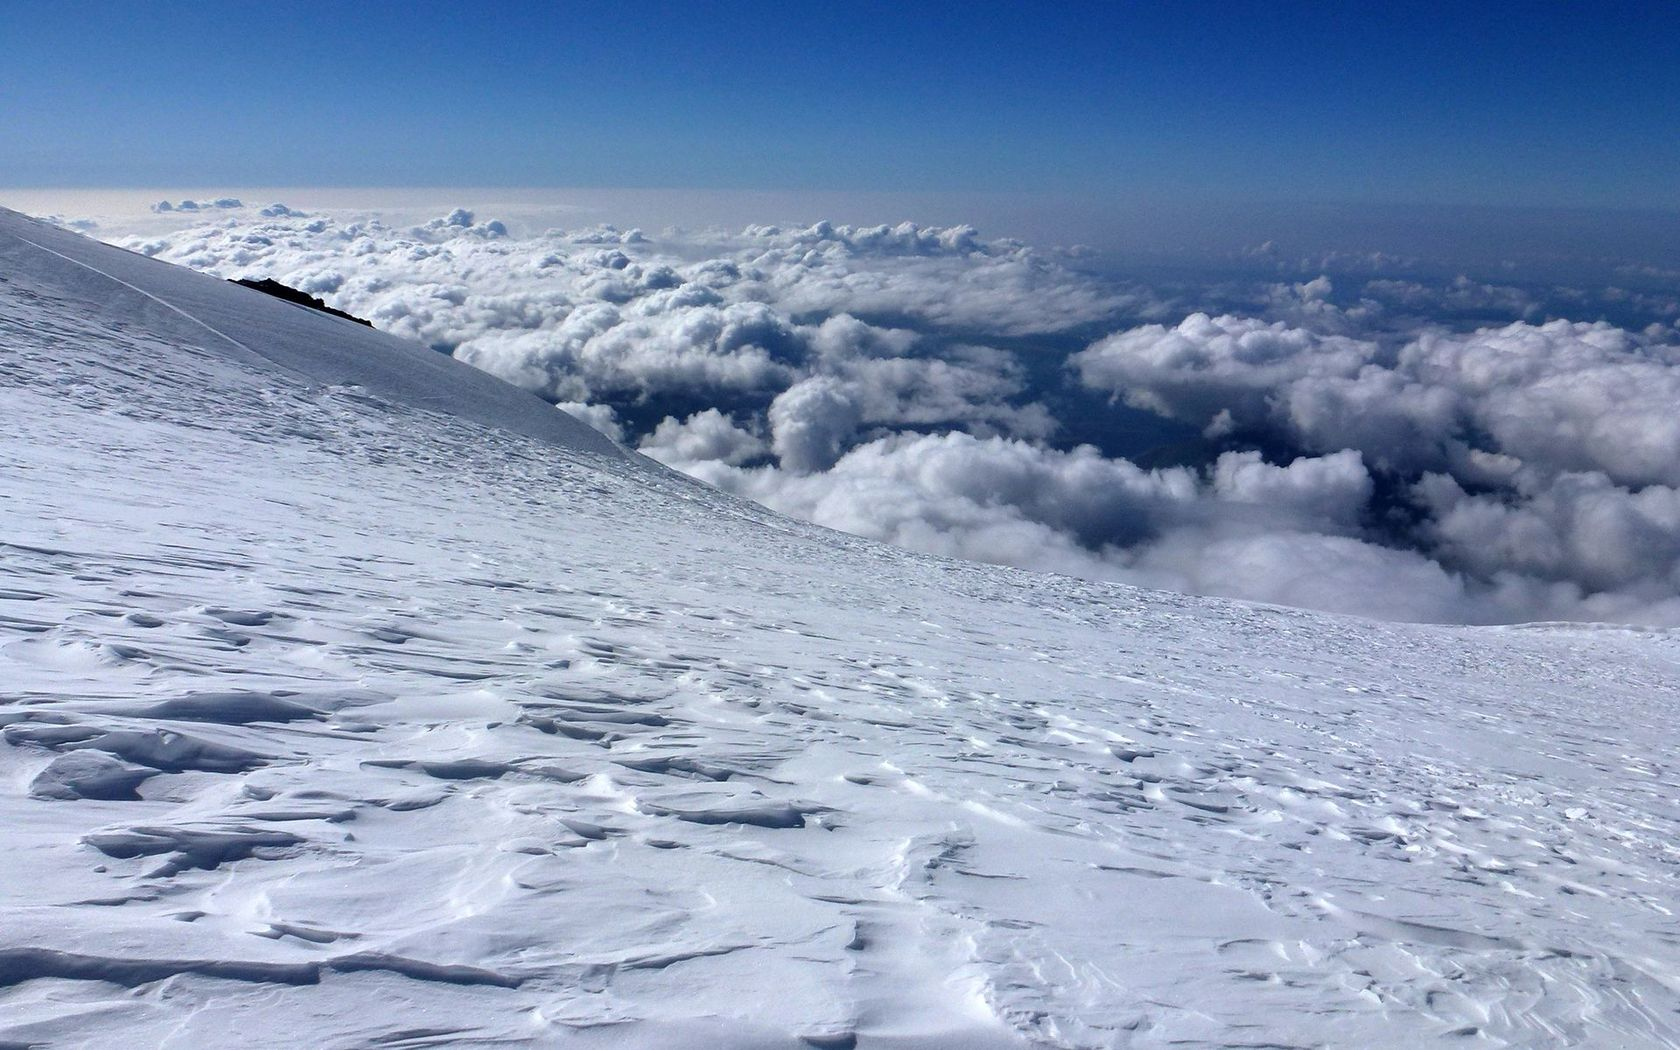 Snowy mountain peak above the clouds